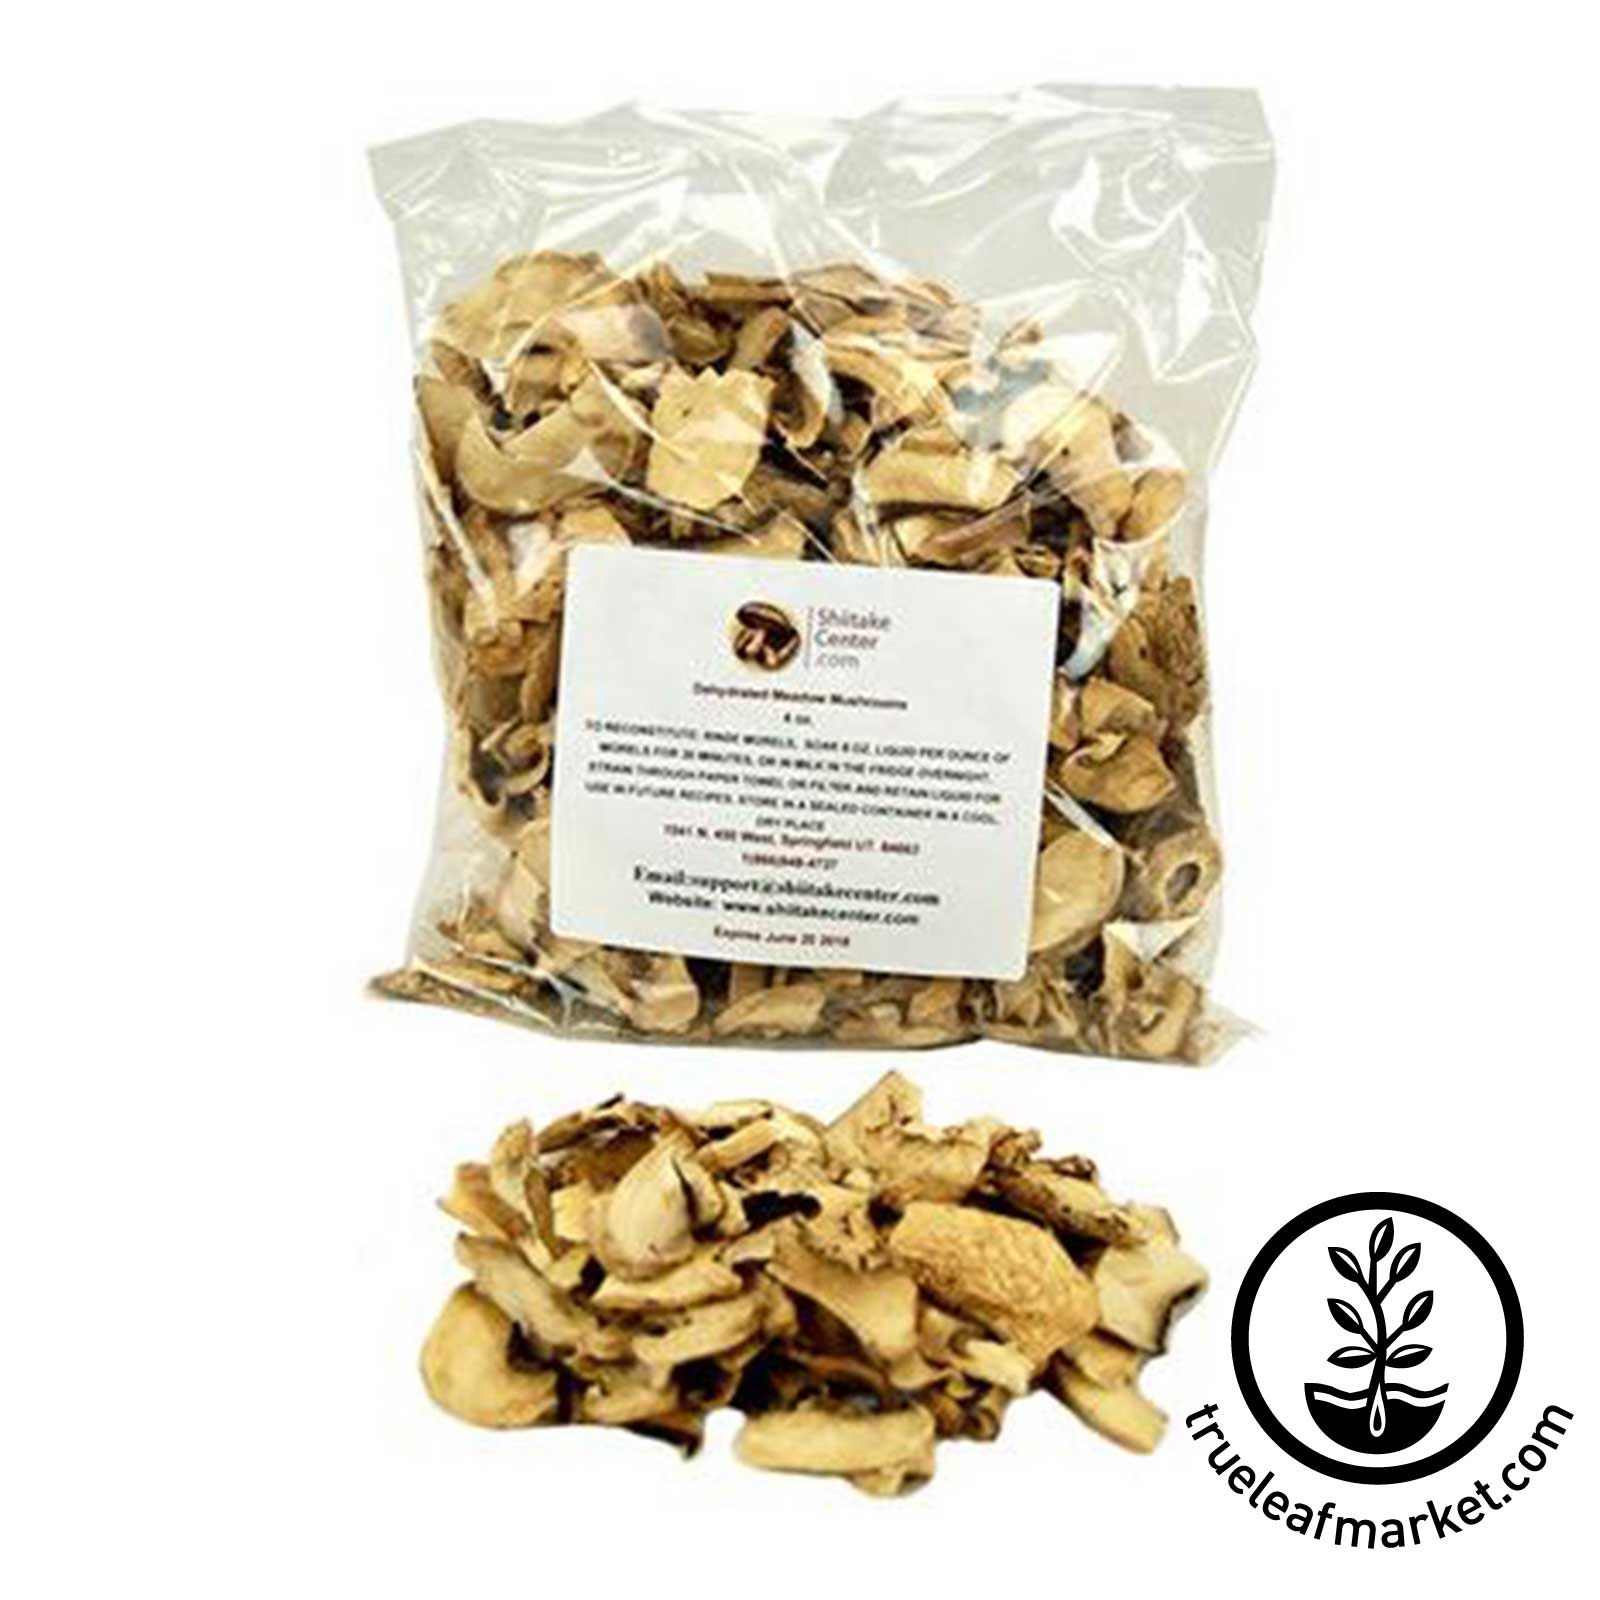 Meadow Mushrooms 4oz